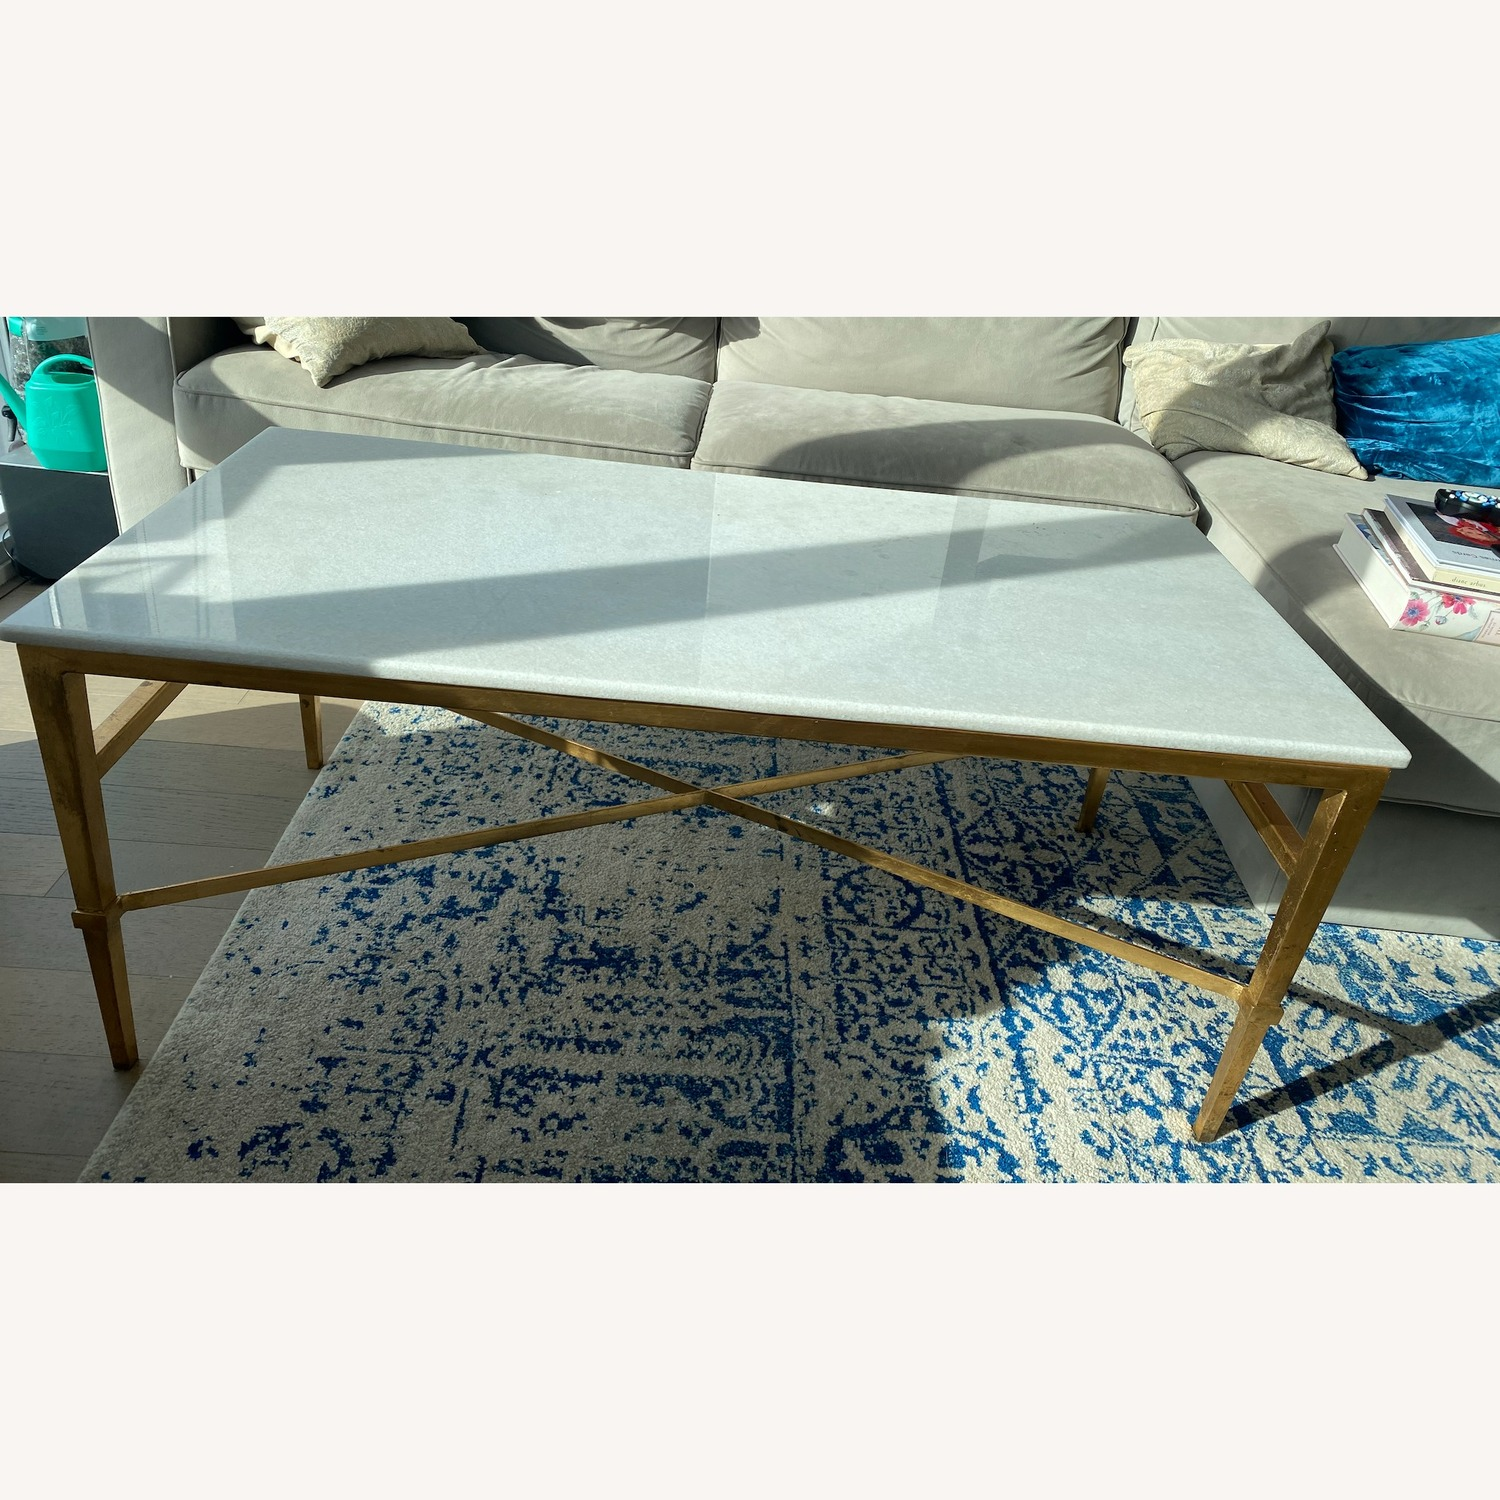 Safavieh Couture Gold & Marble Acker Coffee Table - image-5